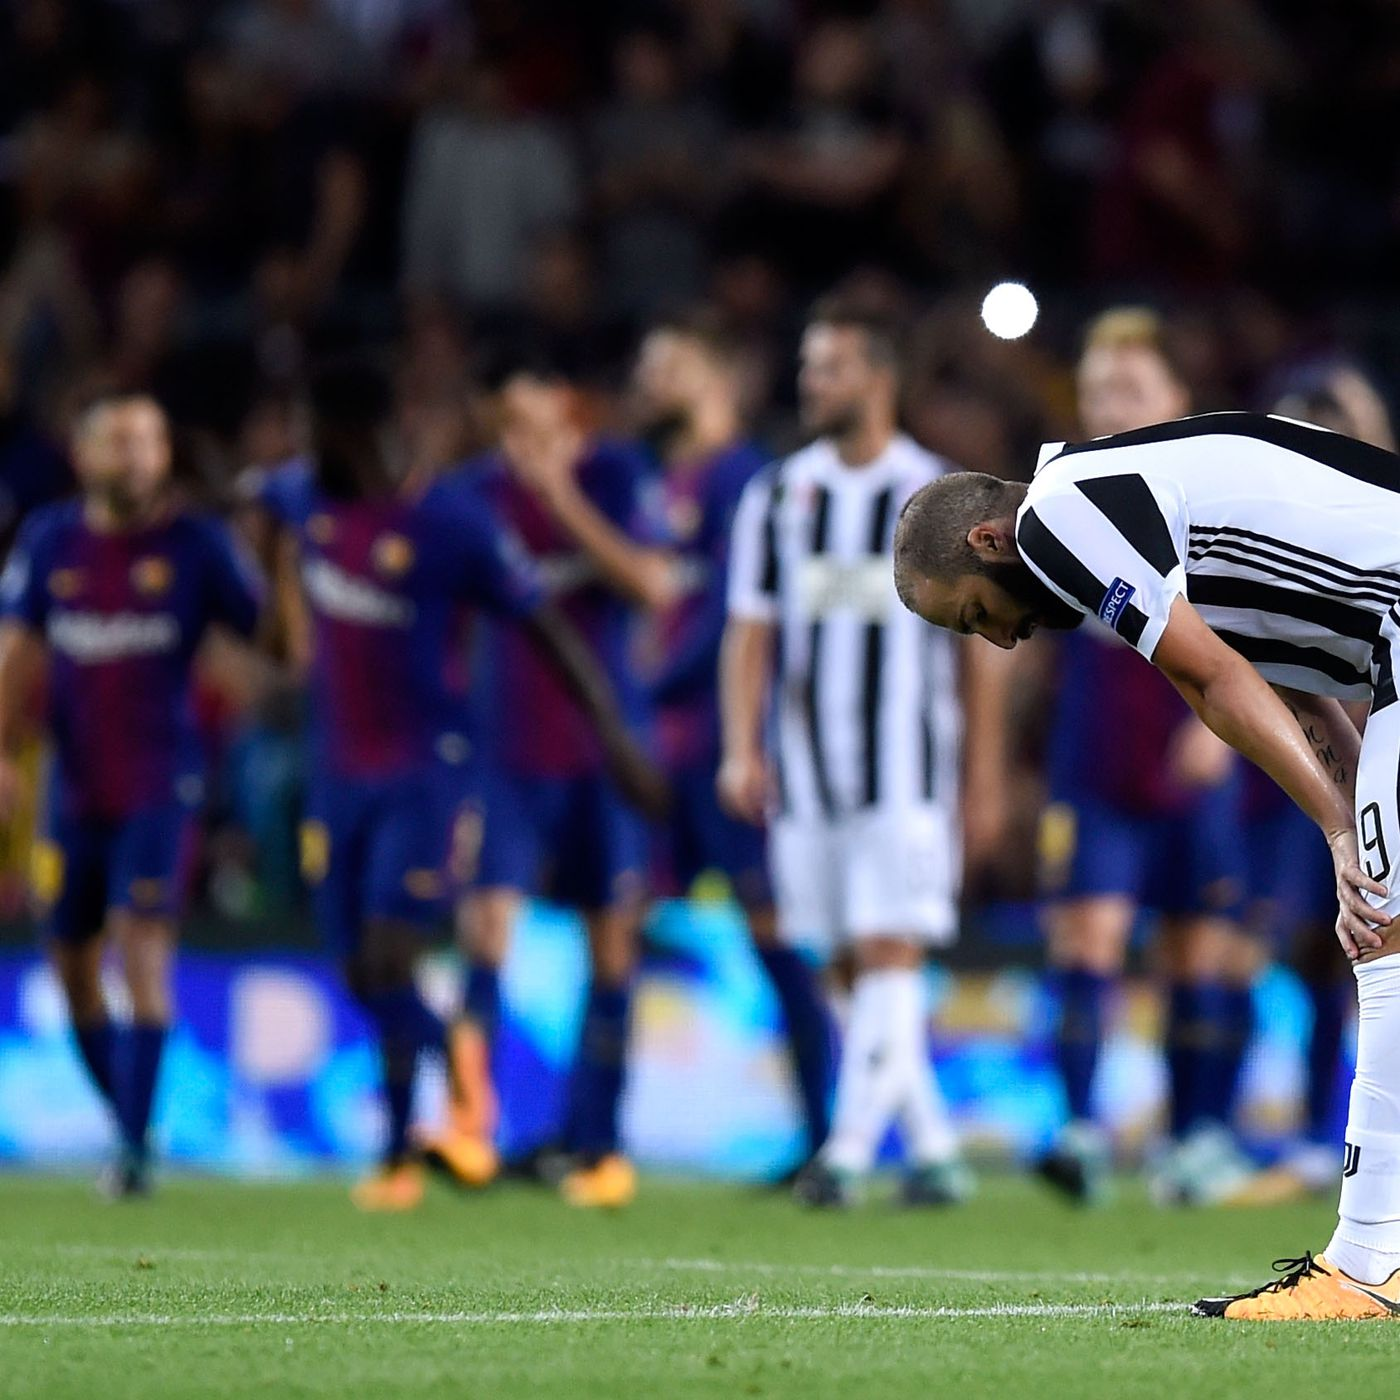 barcelona vs juventus 2017 final score 3 0 shorthanded juve out classed in loss to barca black white read all over barcelona vs juventus 2017 final